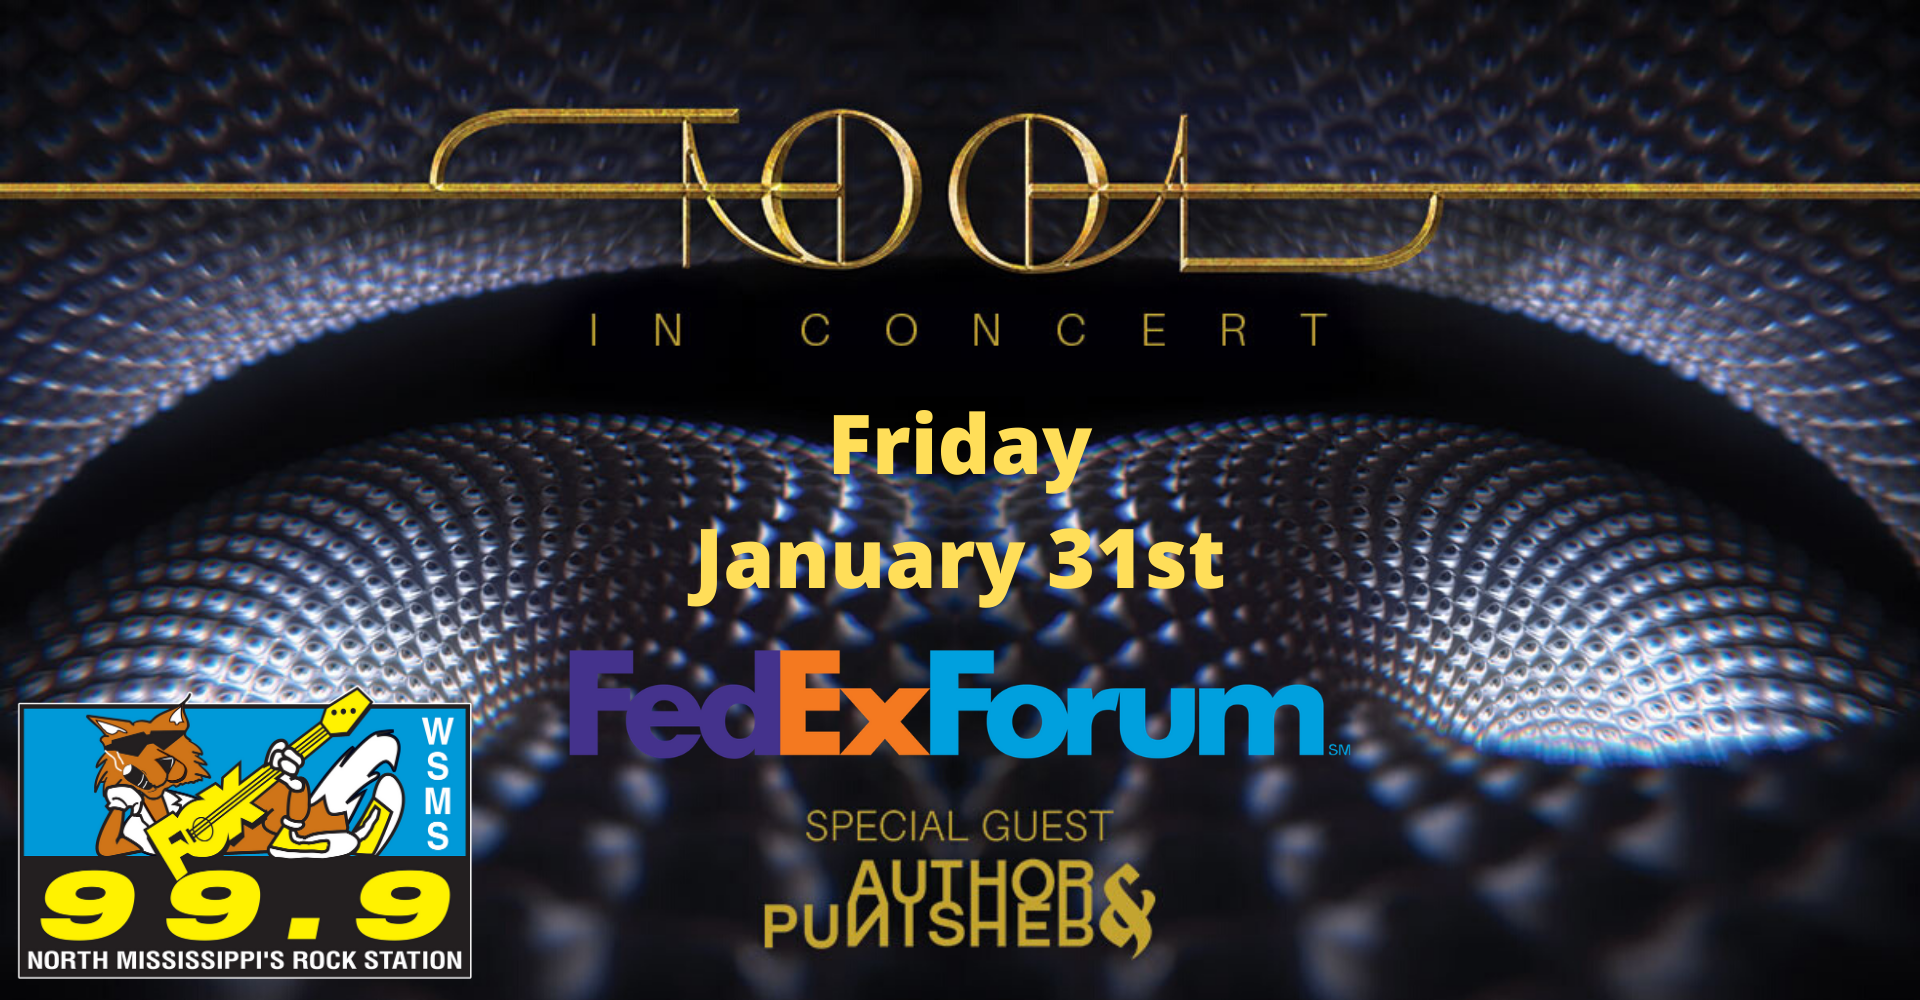 Tool-LIVE at the Fedex Forum on January 31st